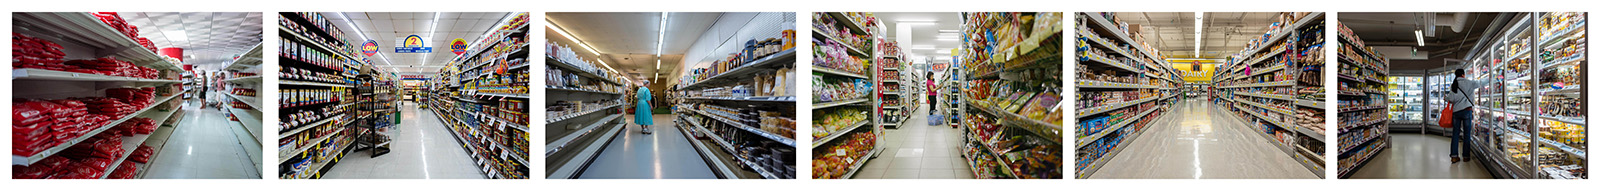 Grocery Aisles. Havana 2016, Iowa 2017, Missouri 2017, Hanoi 2016, Los Angeles 2017, Paris 2018